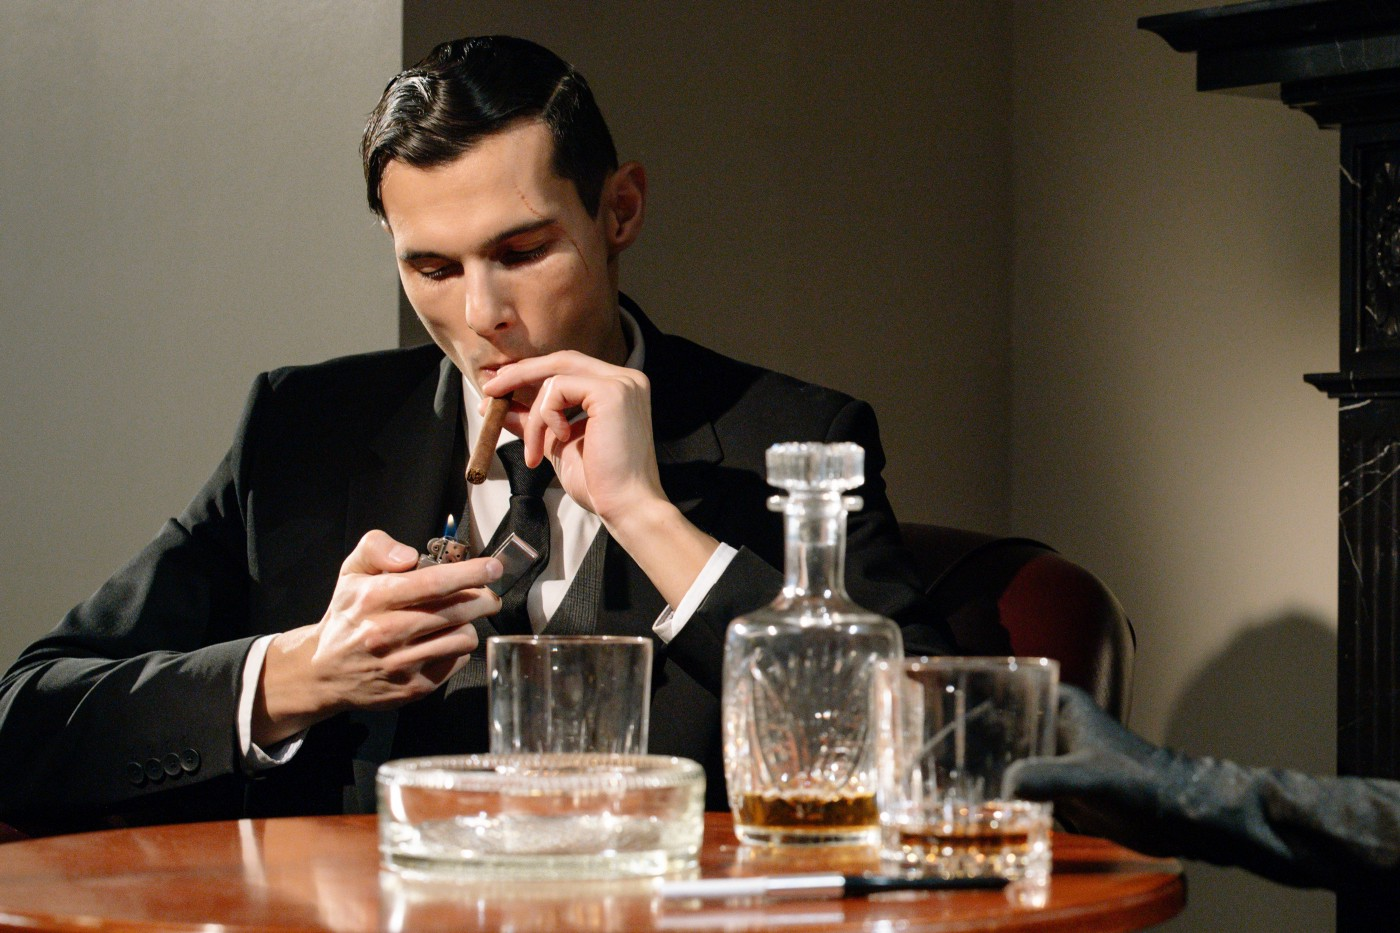 Debonair man lights a cigarette at a table with a whisky decanter and glasses on it.